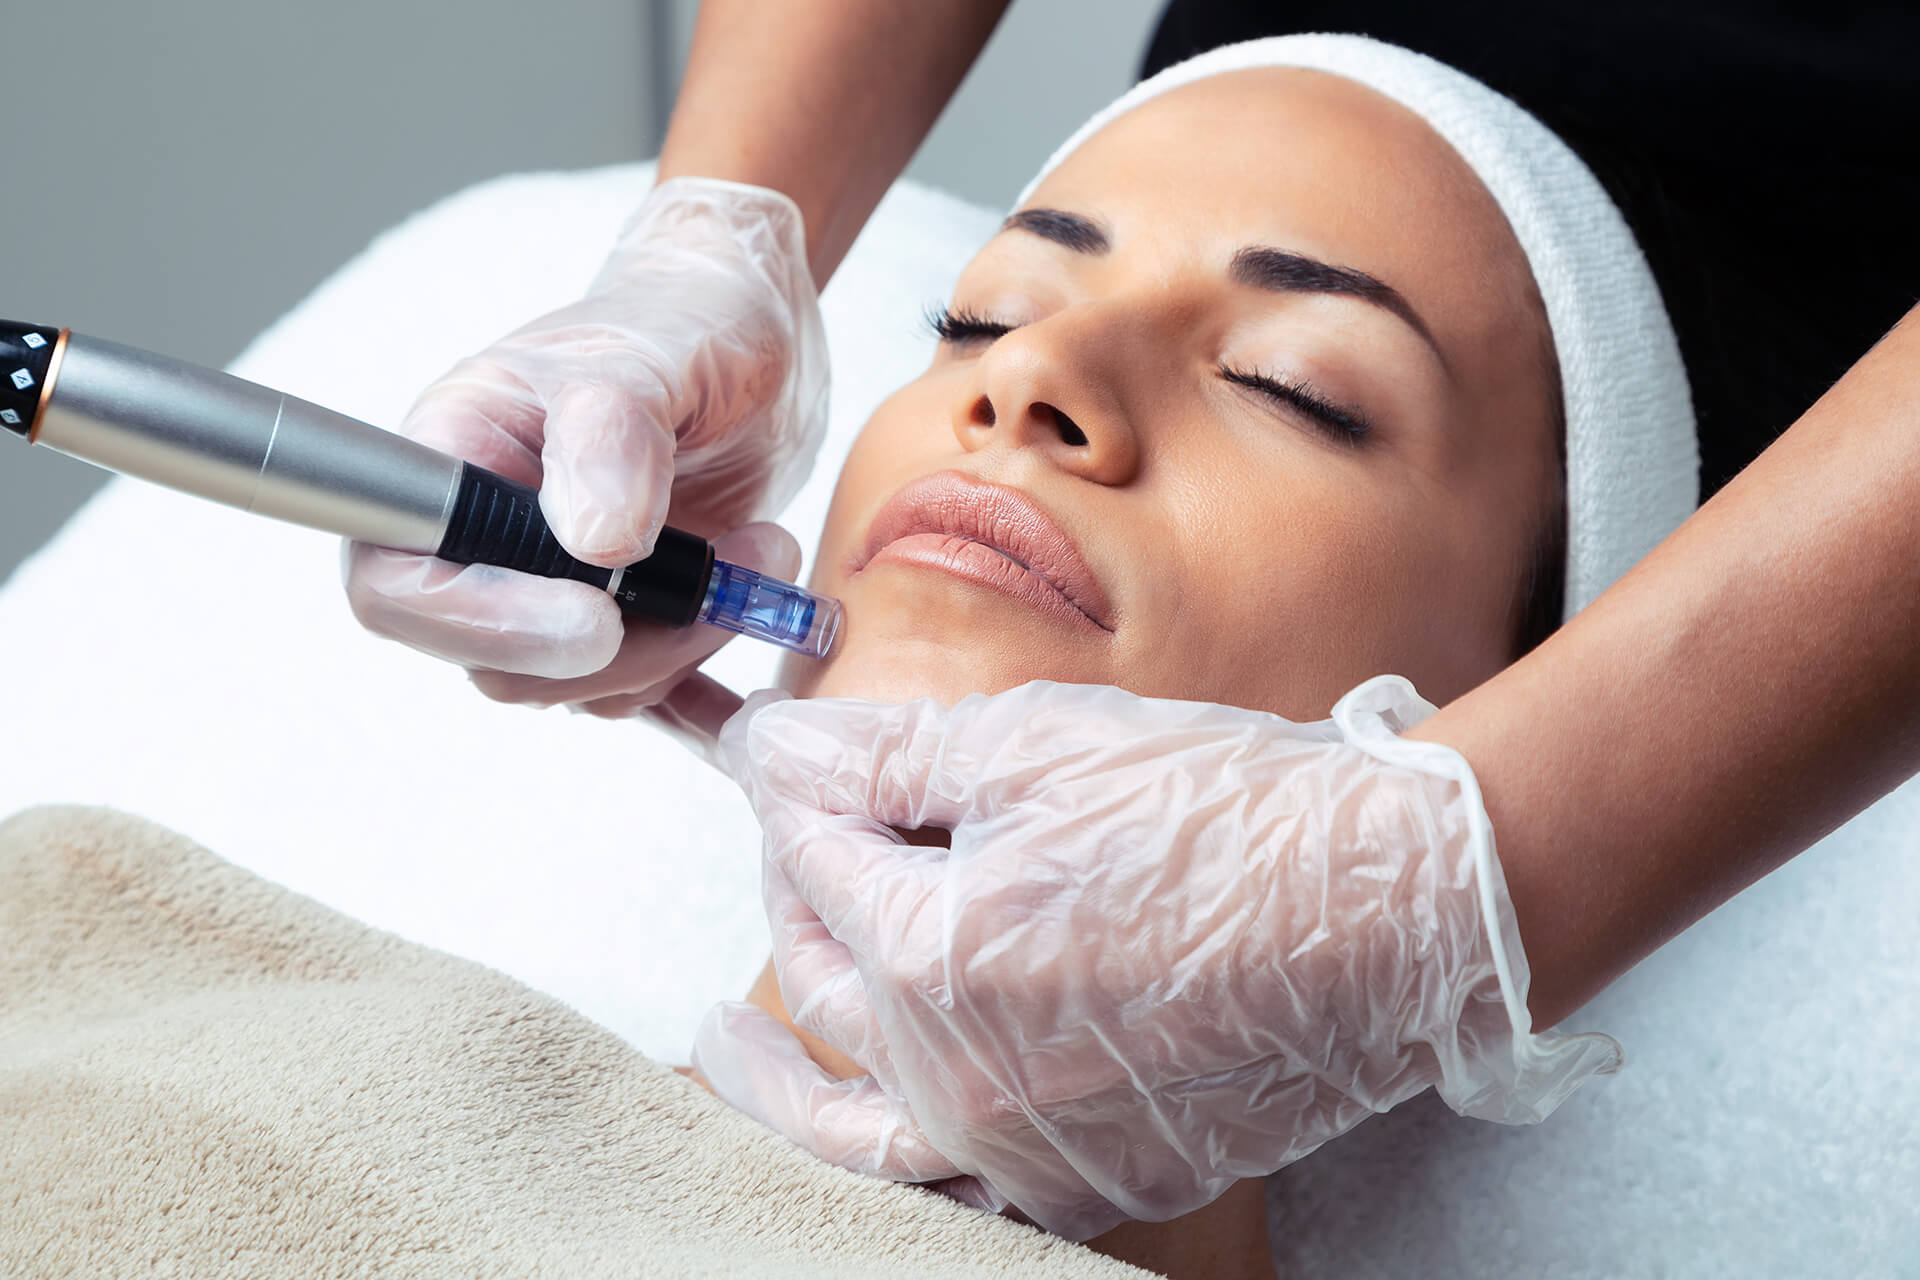 cosmetologist-making-mesotherapy-injection-with-de